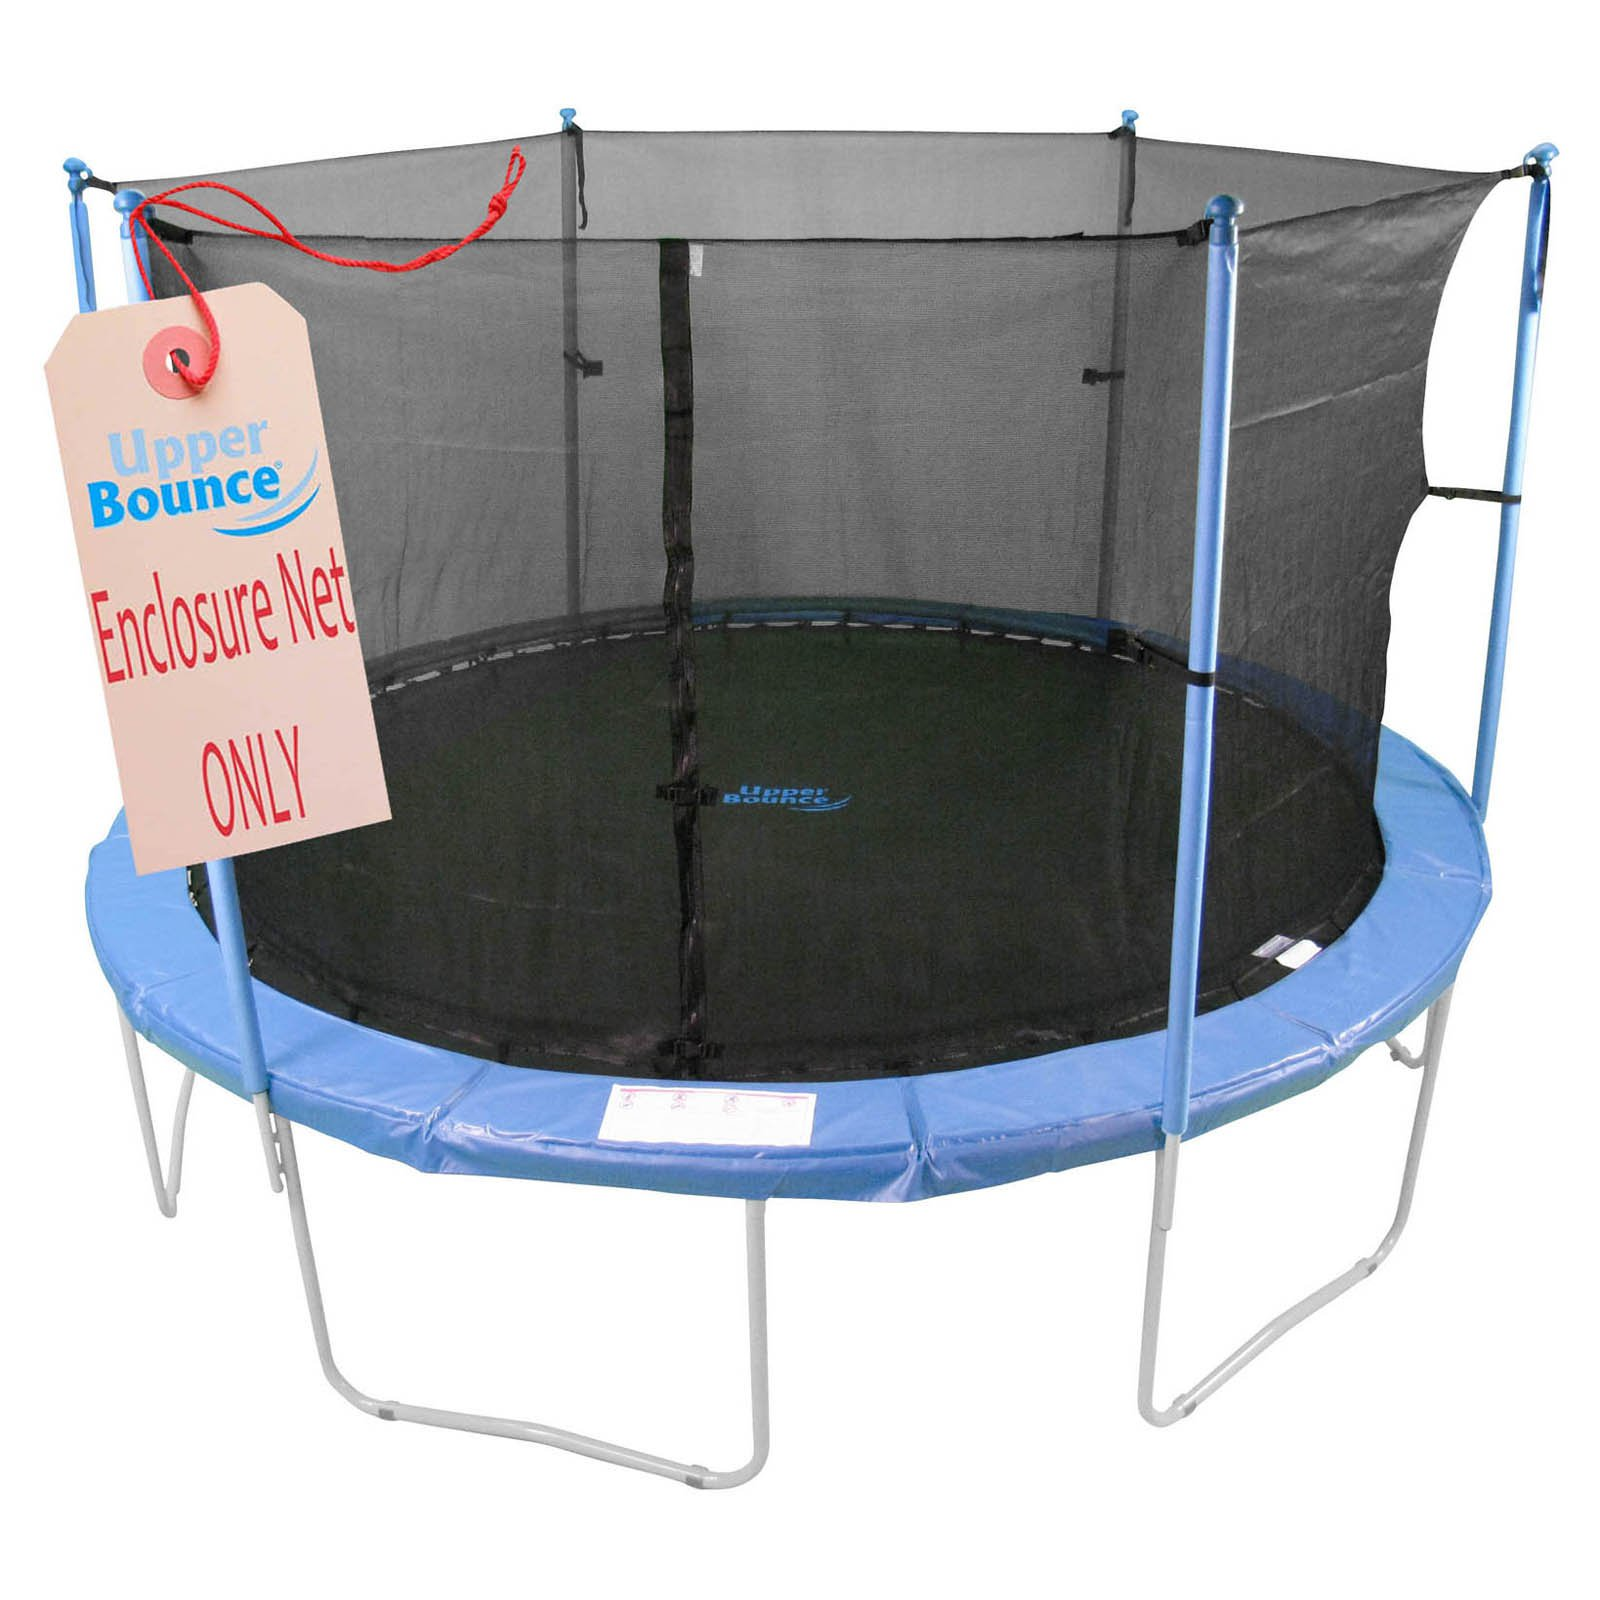 Upper Bounce 8 ft. Trampoline Enclosure Safety Net